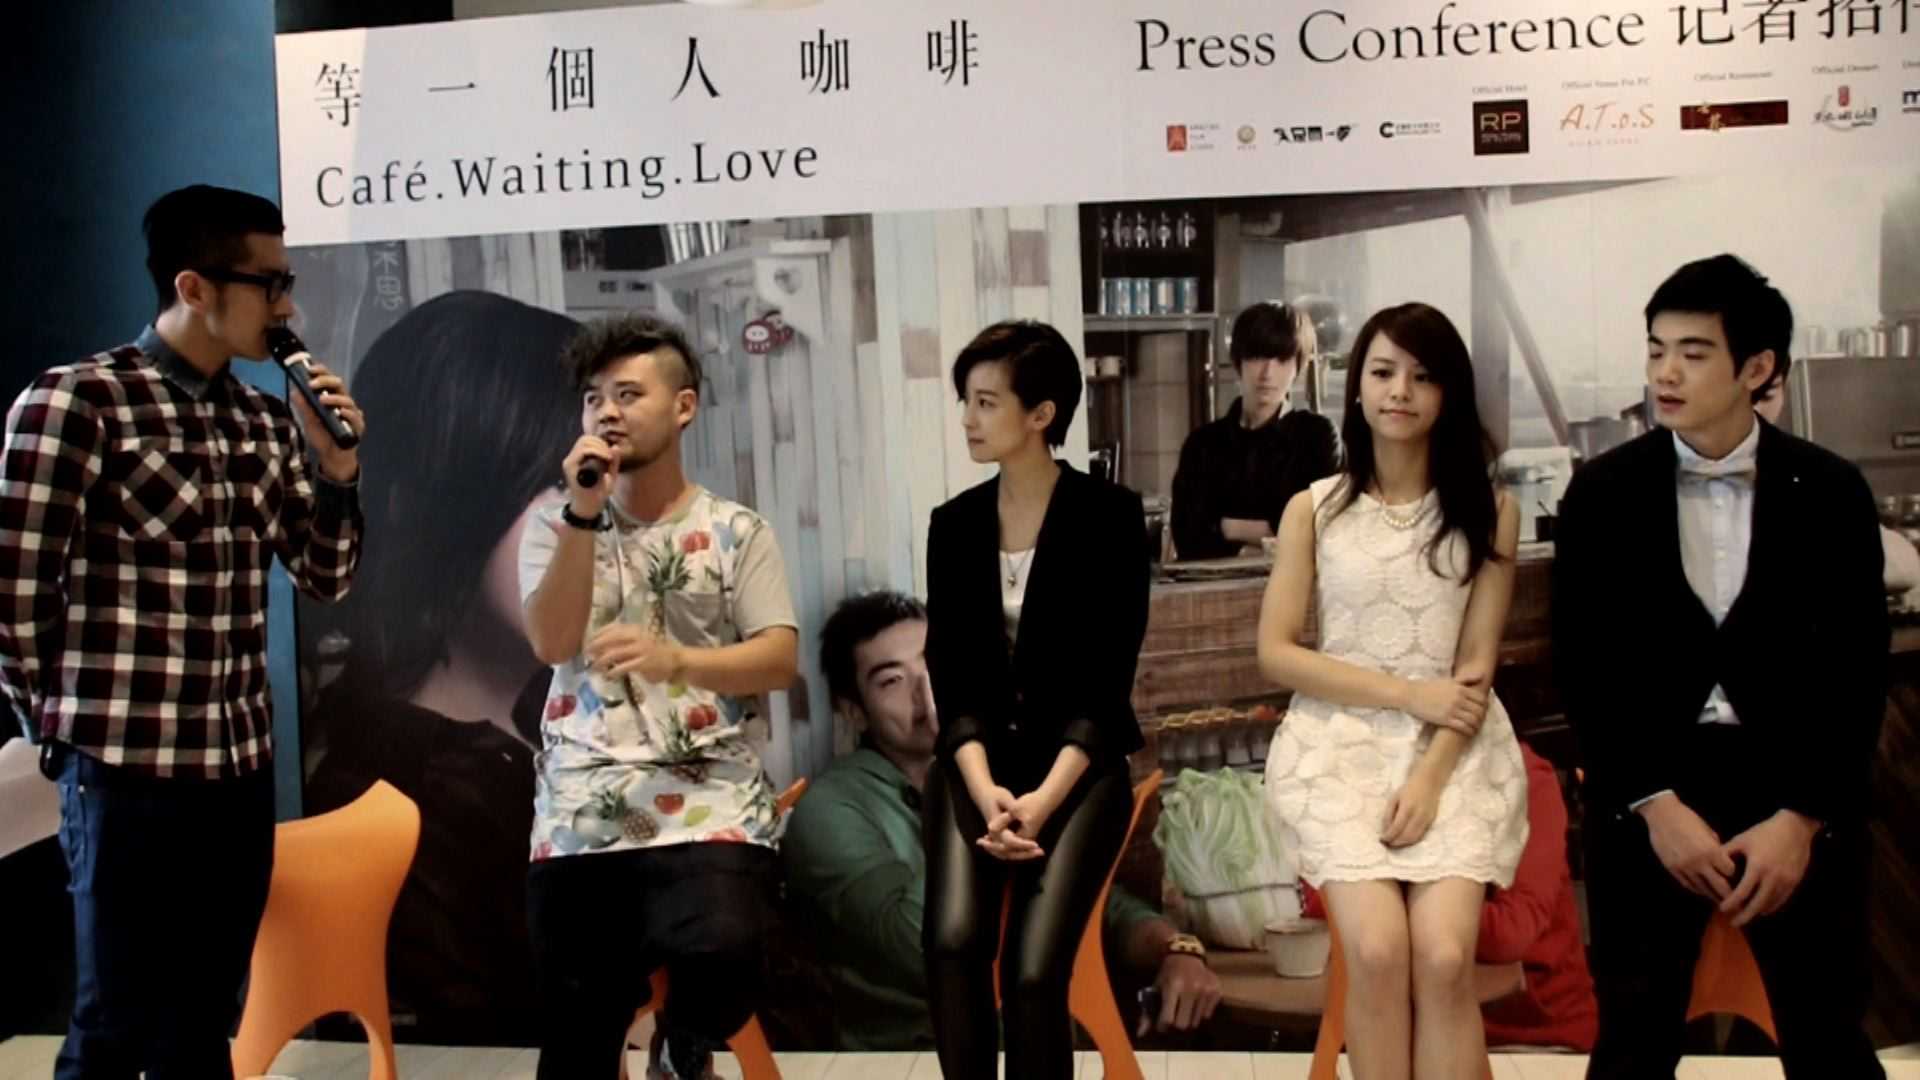 [Press Conference] Cafe.Waiting.Love – In Singapore 2014